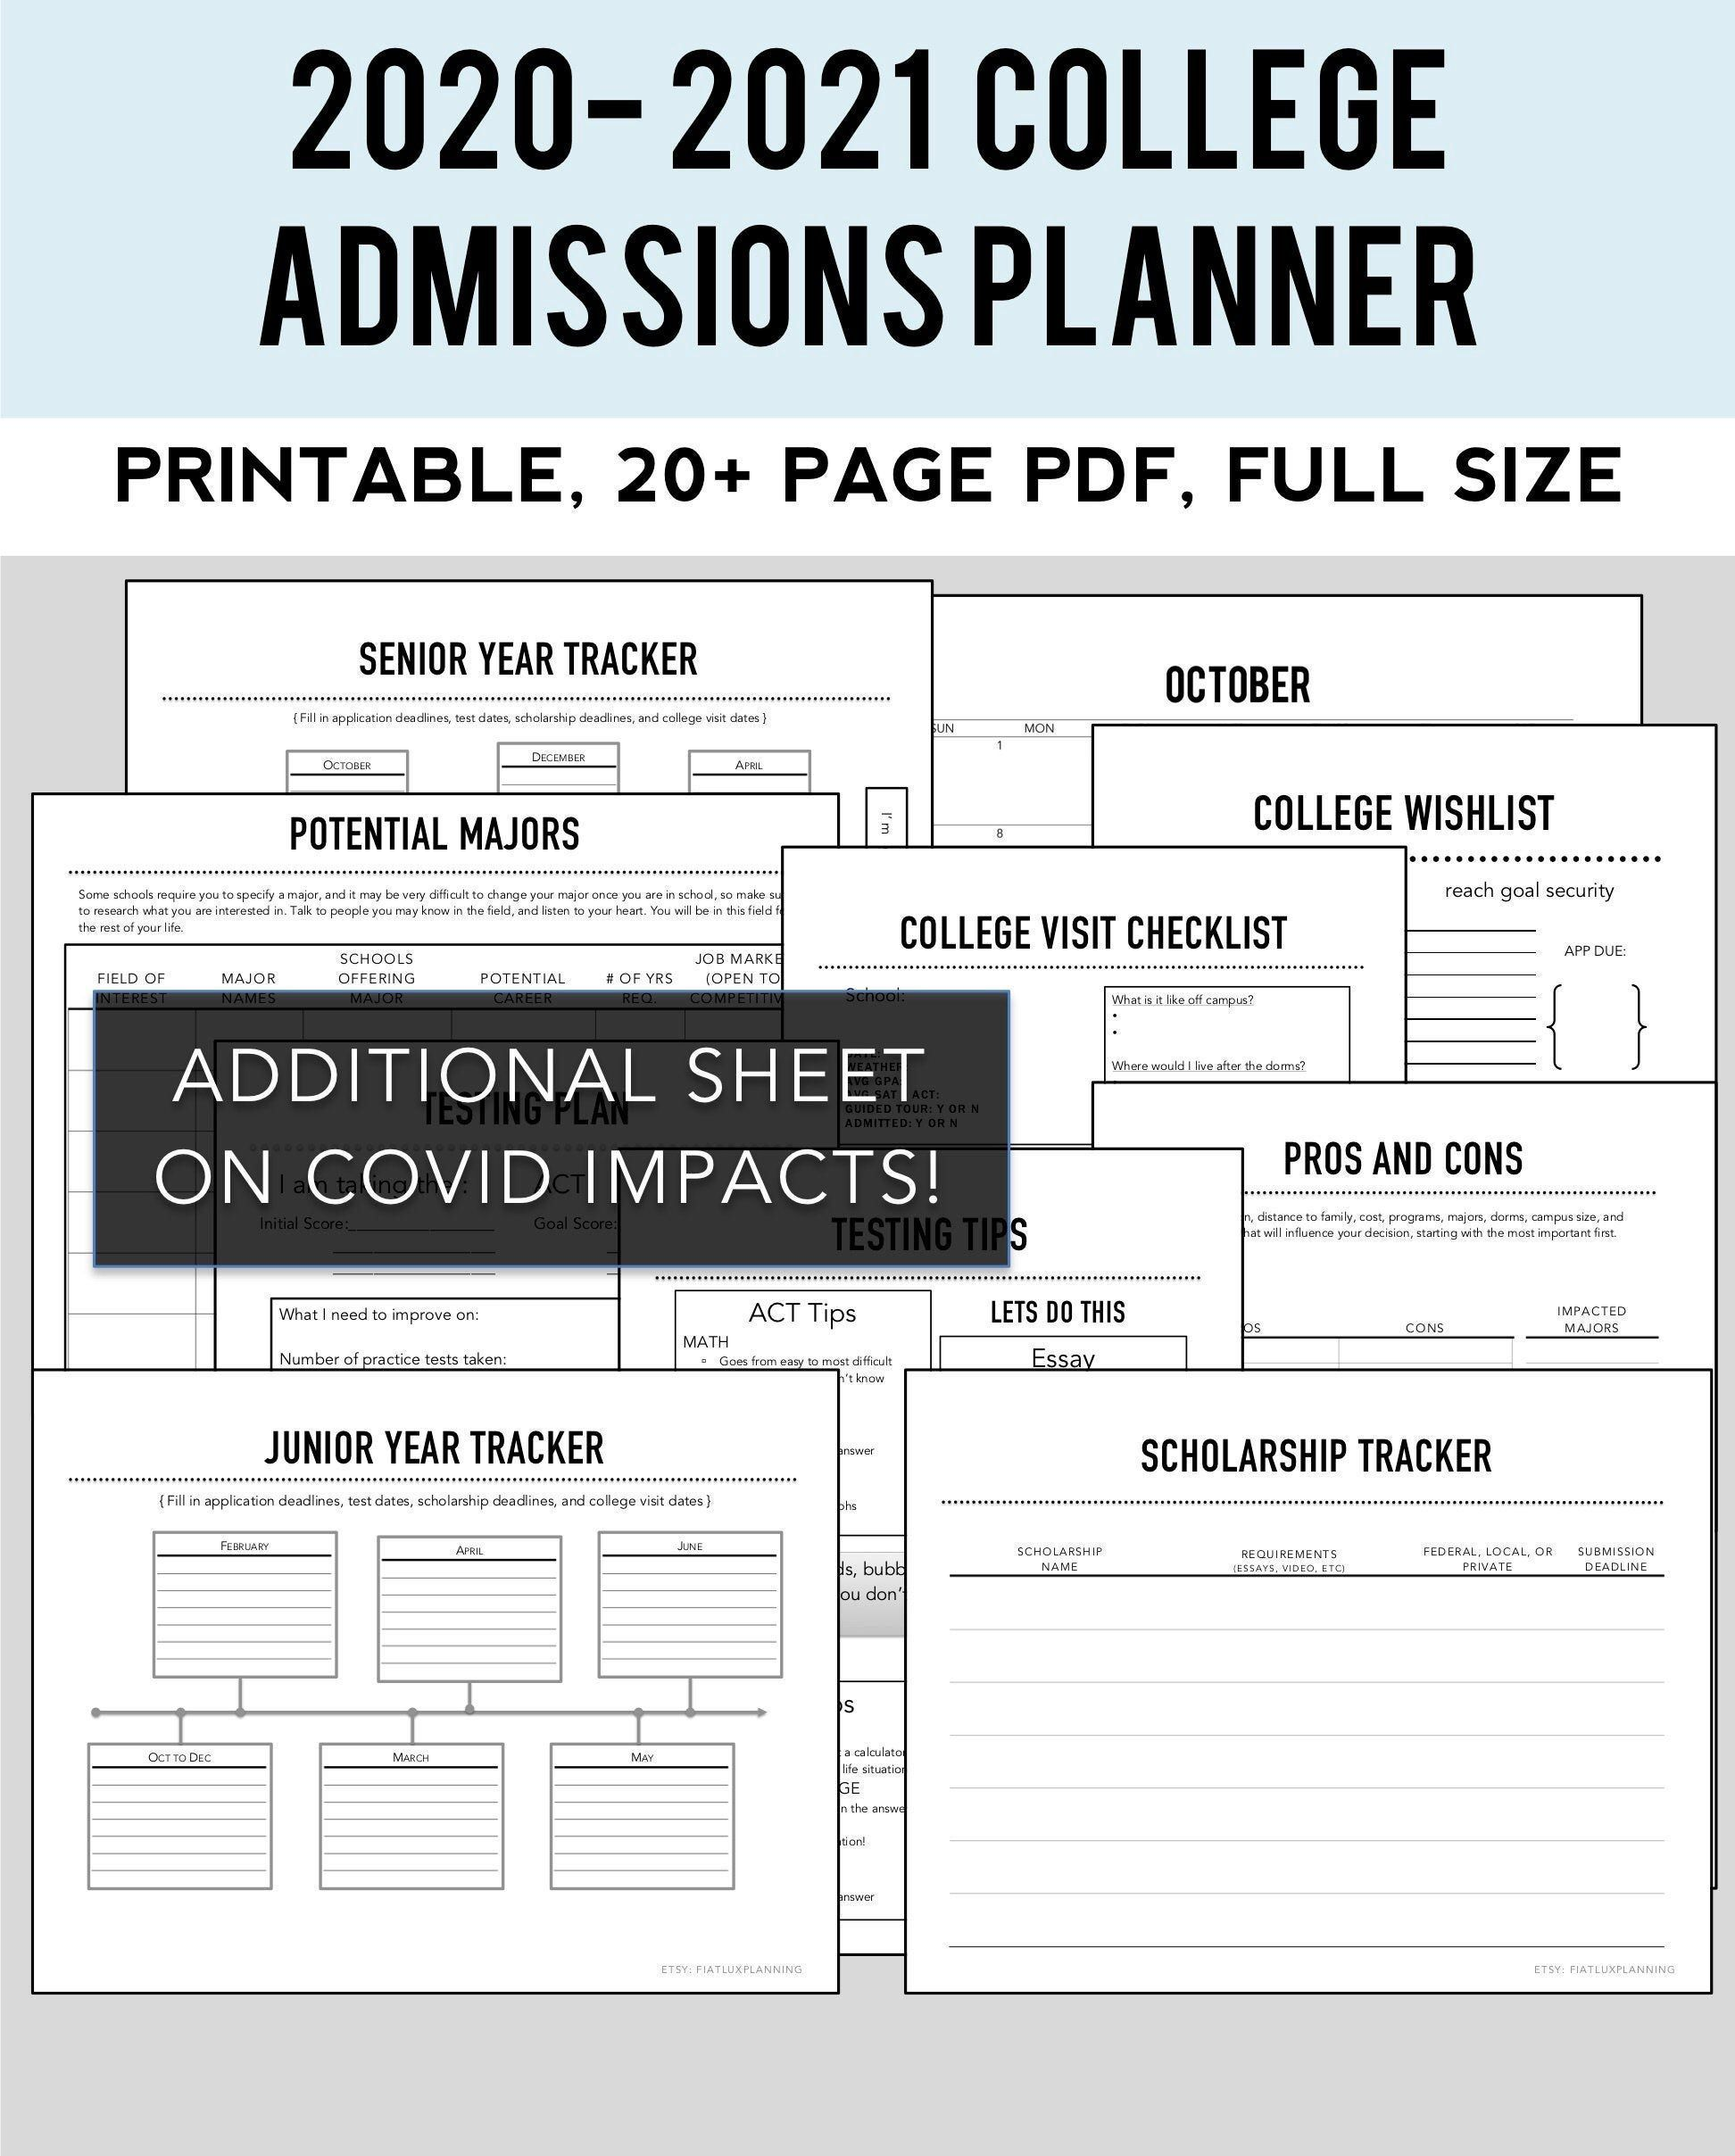 2020 2021 College Admissions Planner Etsy College Admission College Visit Scholarships For College